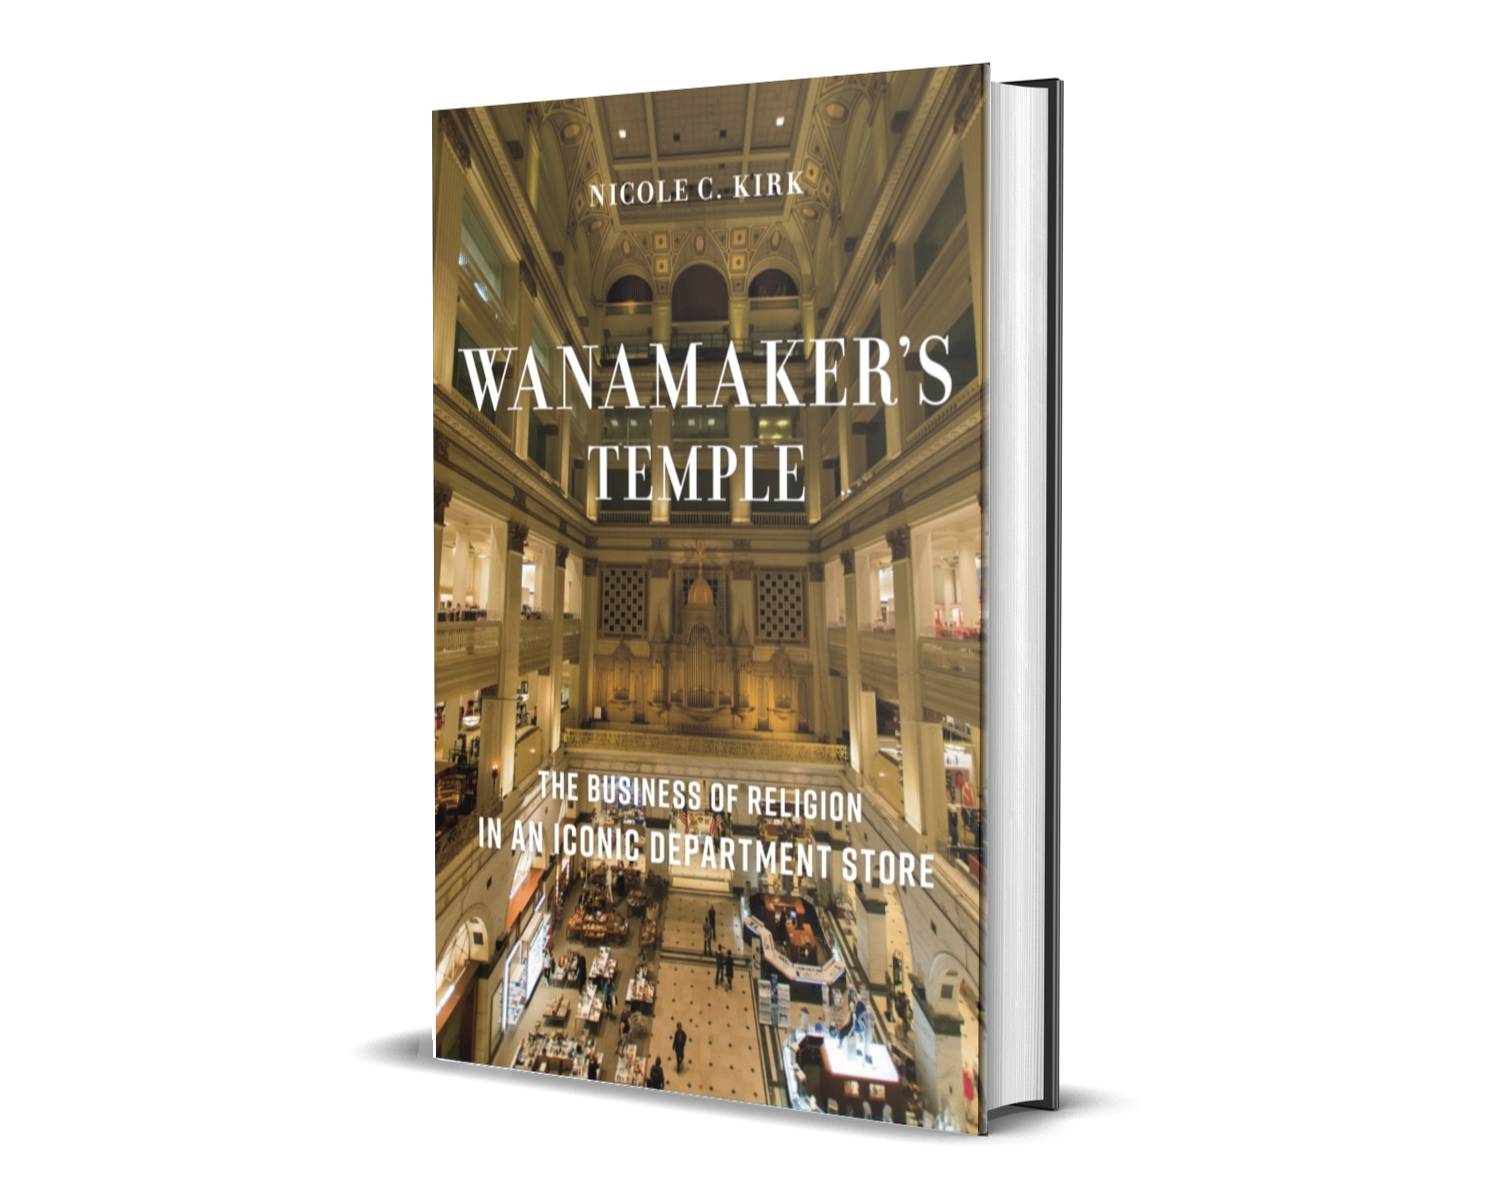 Wanamaker's Temple - The Business of Religion in an Iconic Department Store